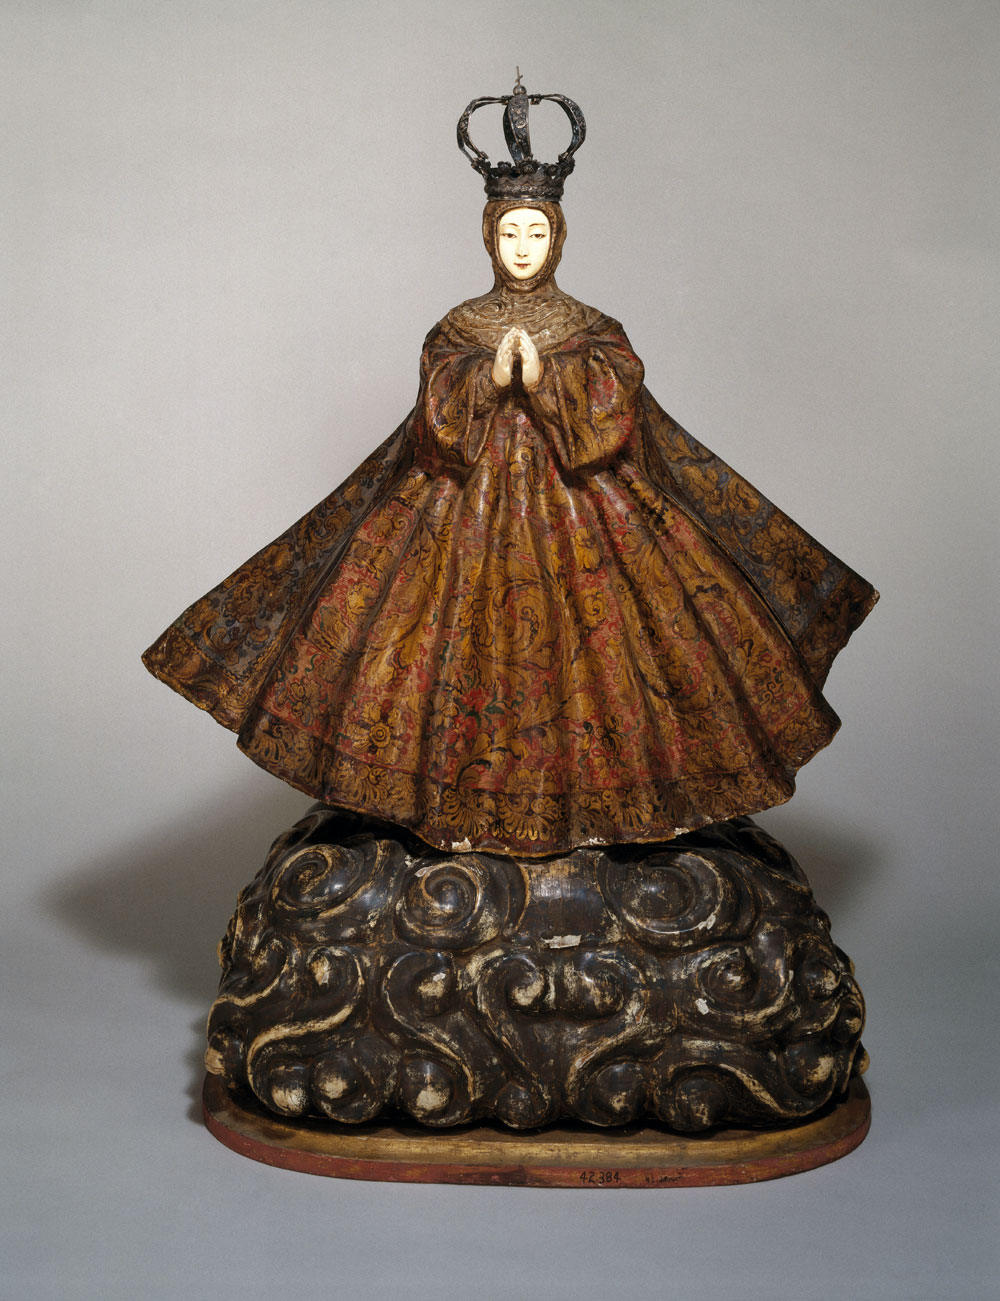 Virgin of the Immaculate Conception, probably 18th century. Brooklyn Museum, Frank L. Babbott Fund, 42.384.